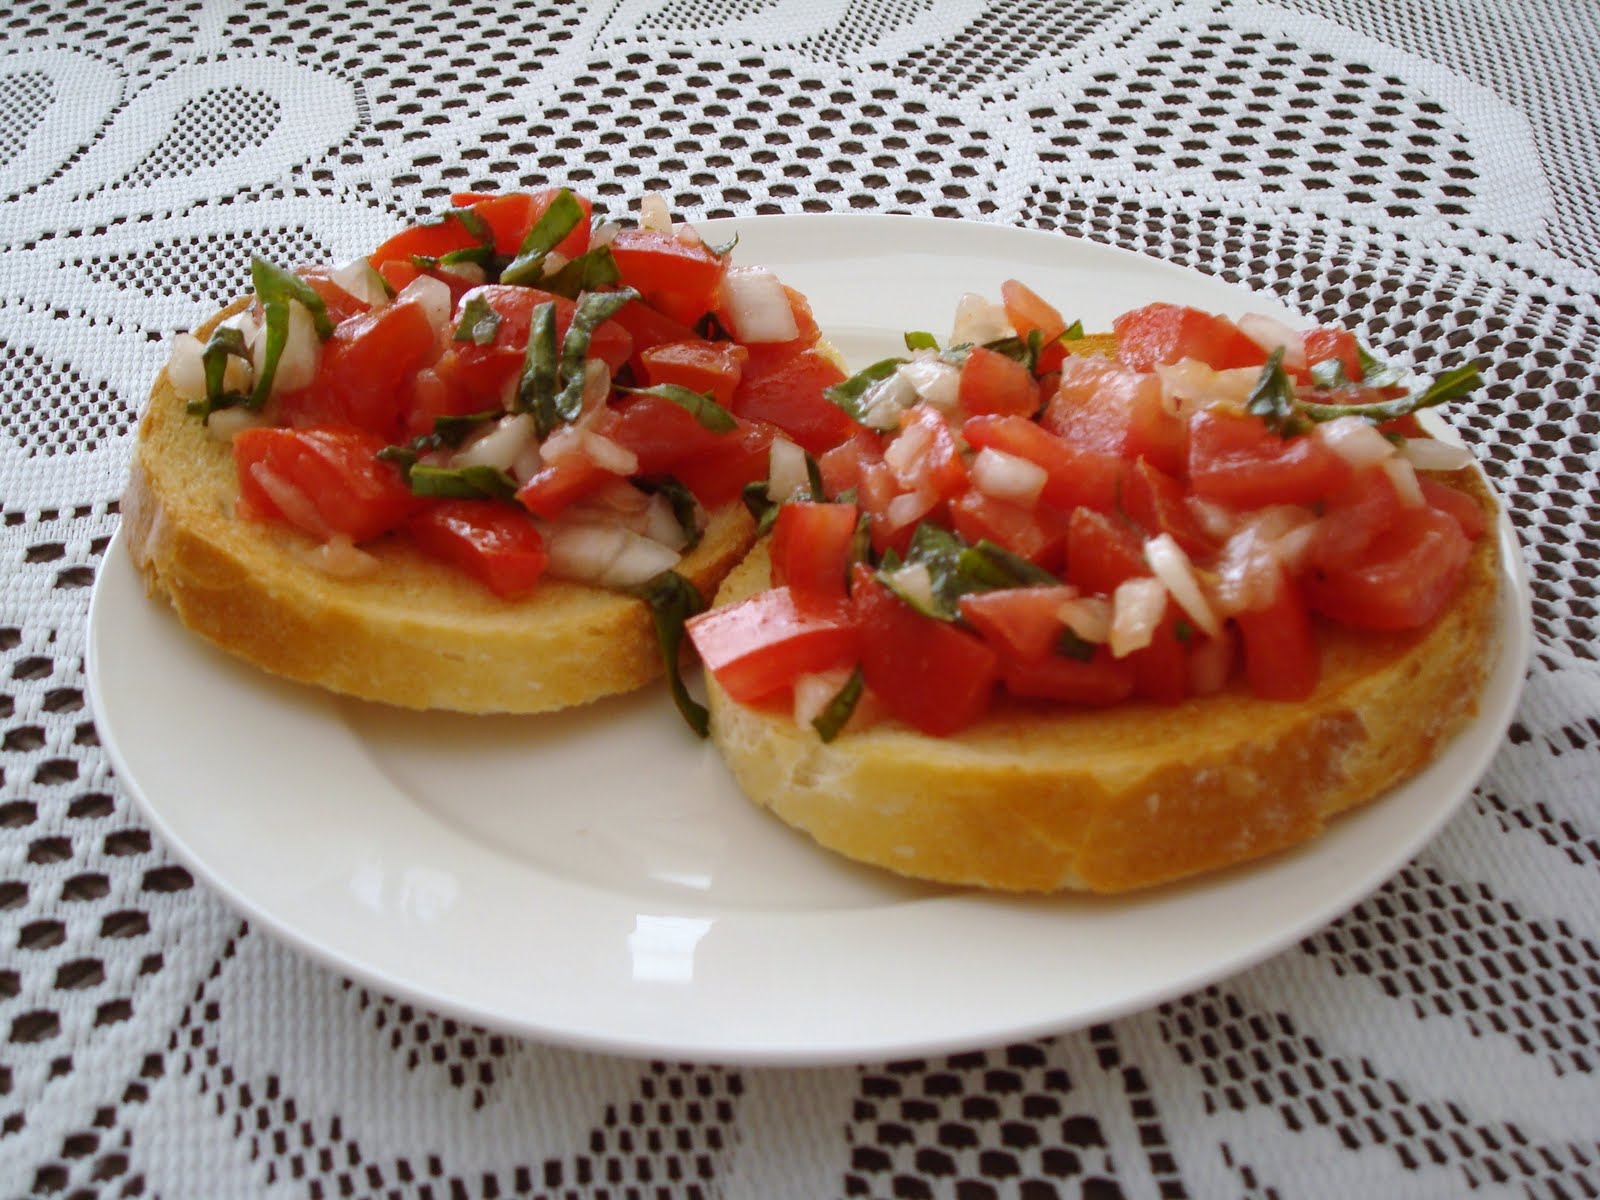 Fancy Tasty Food: Tomato and Basil Bruschetta